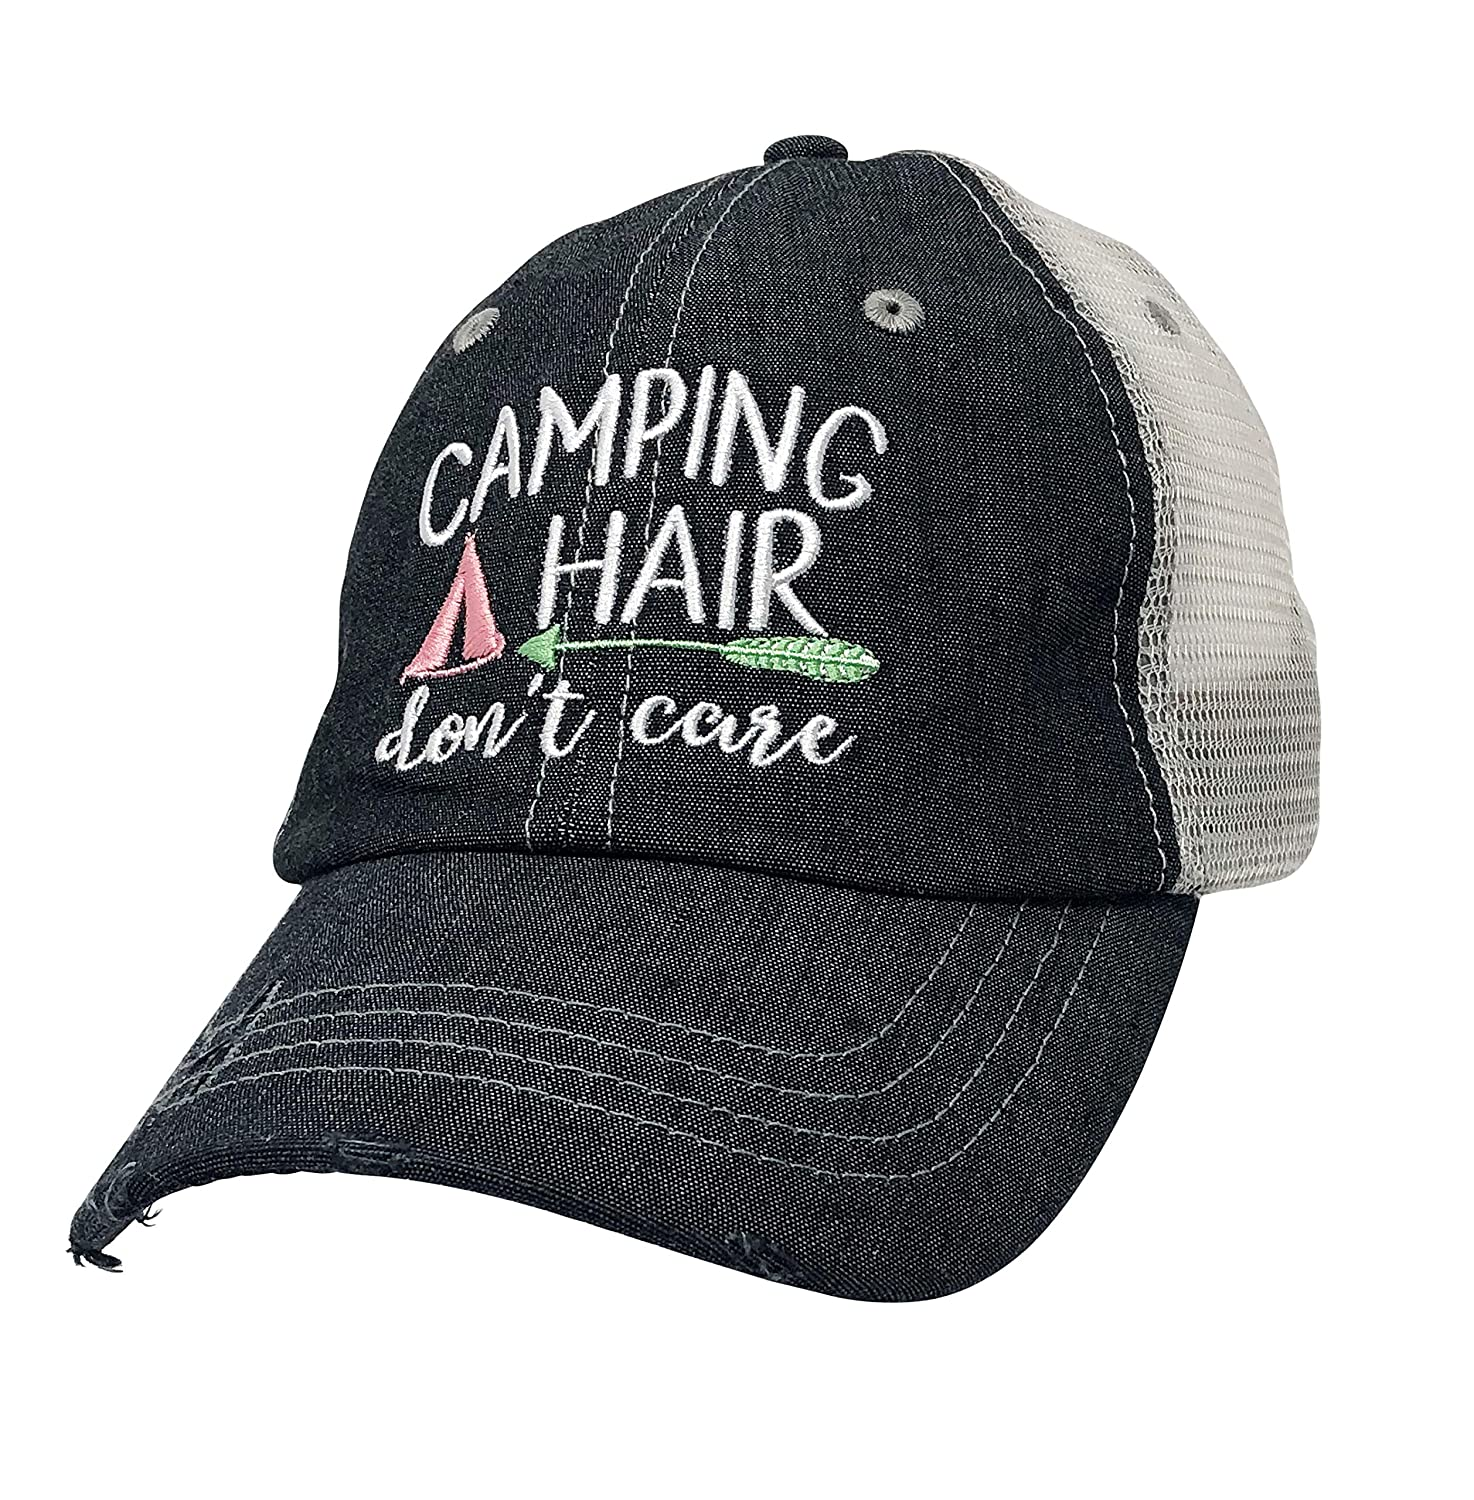 Xoxo, Coco Camping Hair Don't Care Embroidered Grey Distressed Hat Mesh Trucker Style Hat Cap